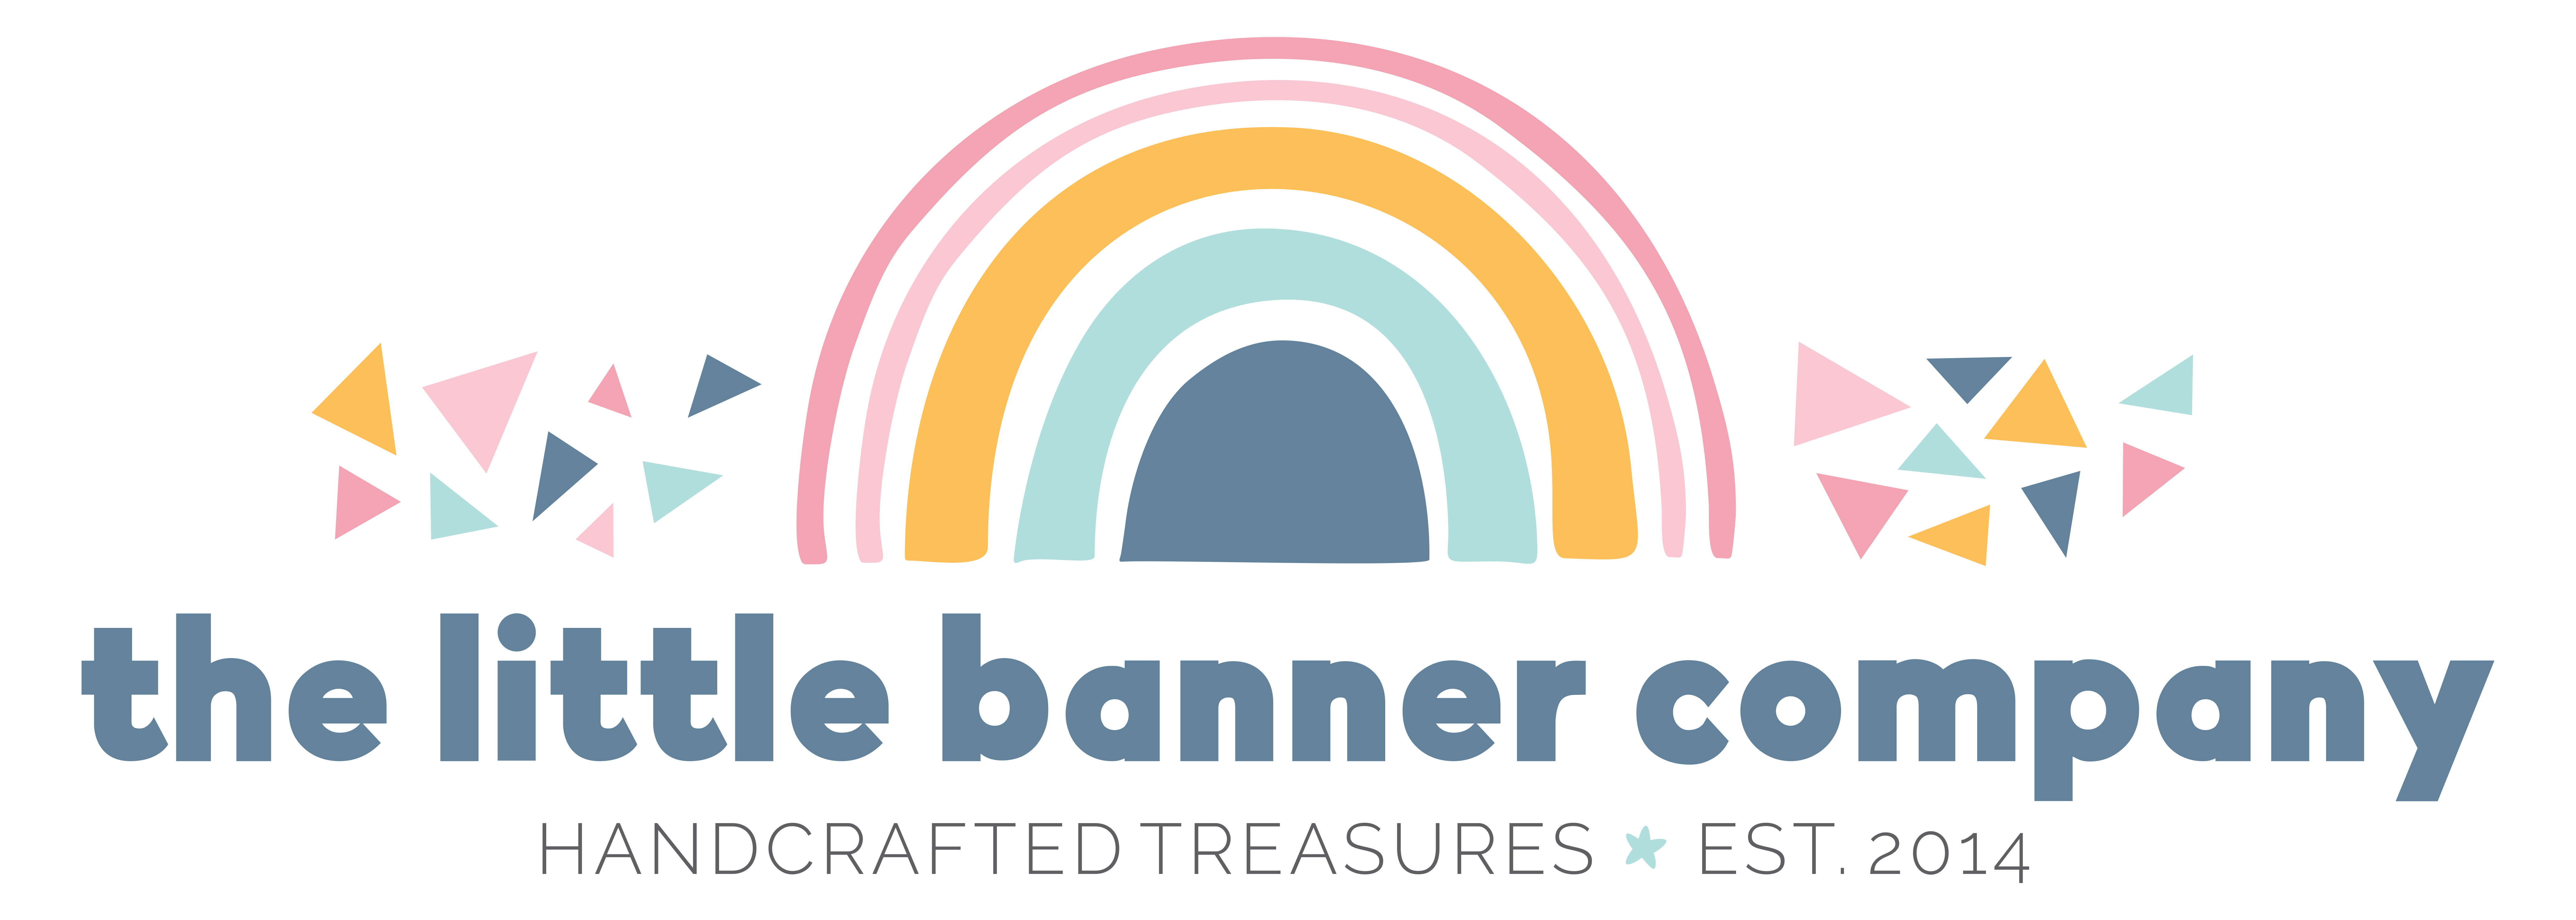 The Little Banner Company